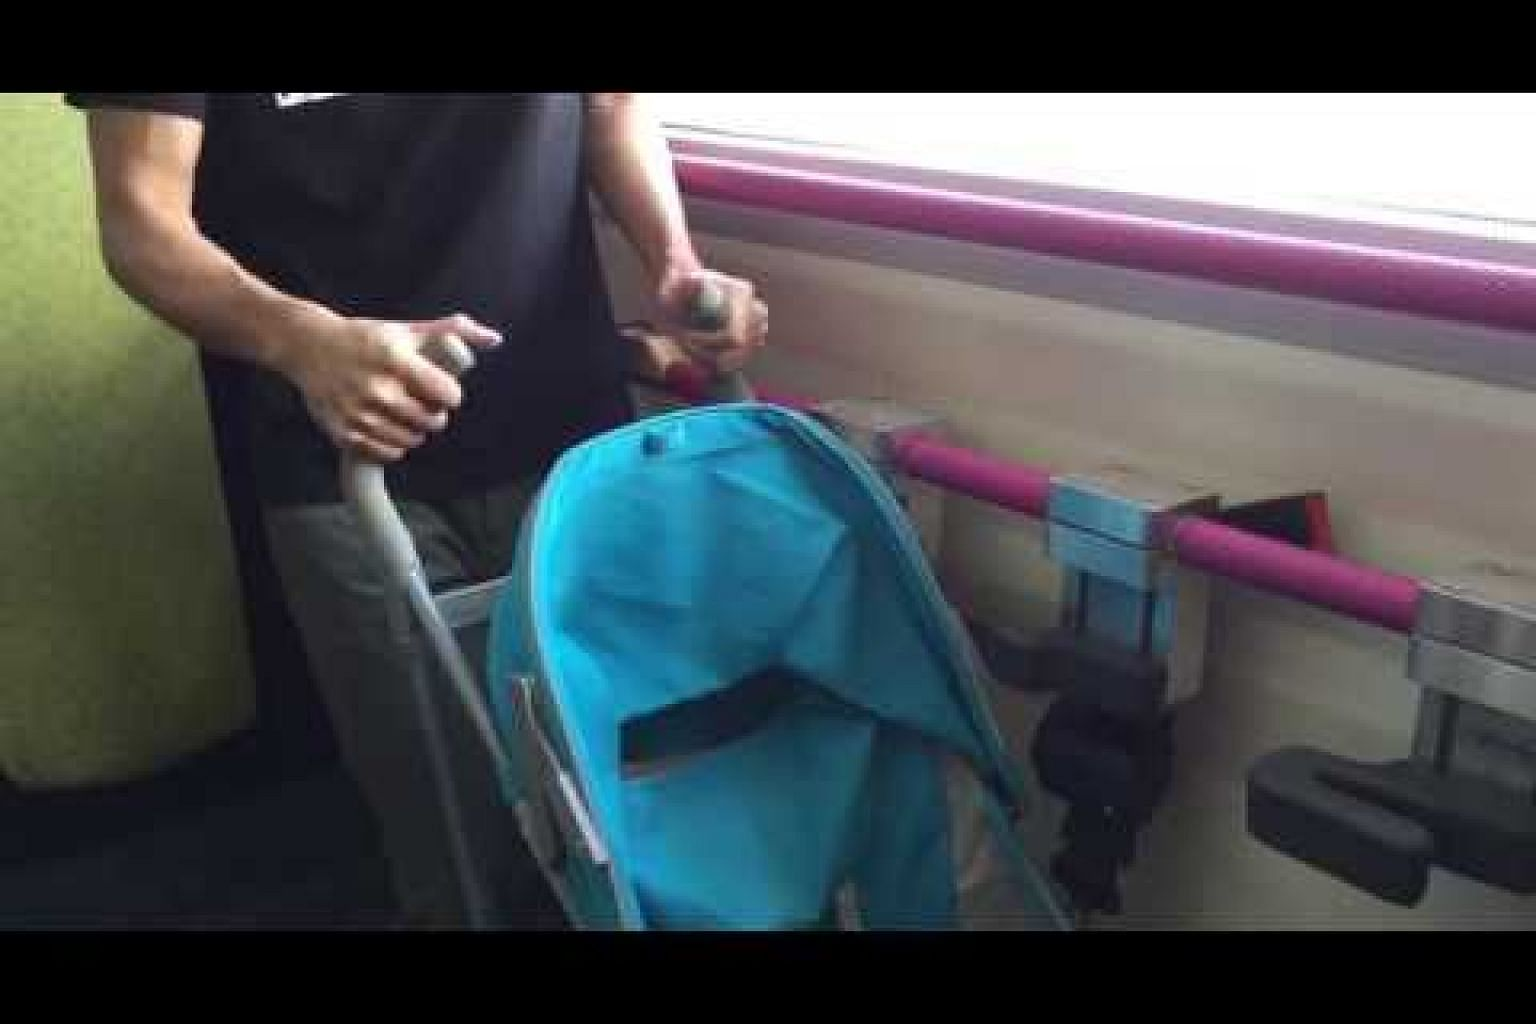 Demo on the use of the restraining device meant to help secure baby strollers in buses